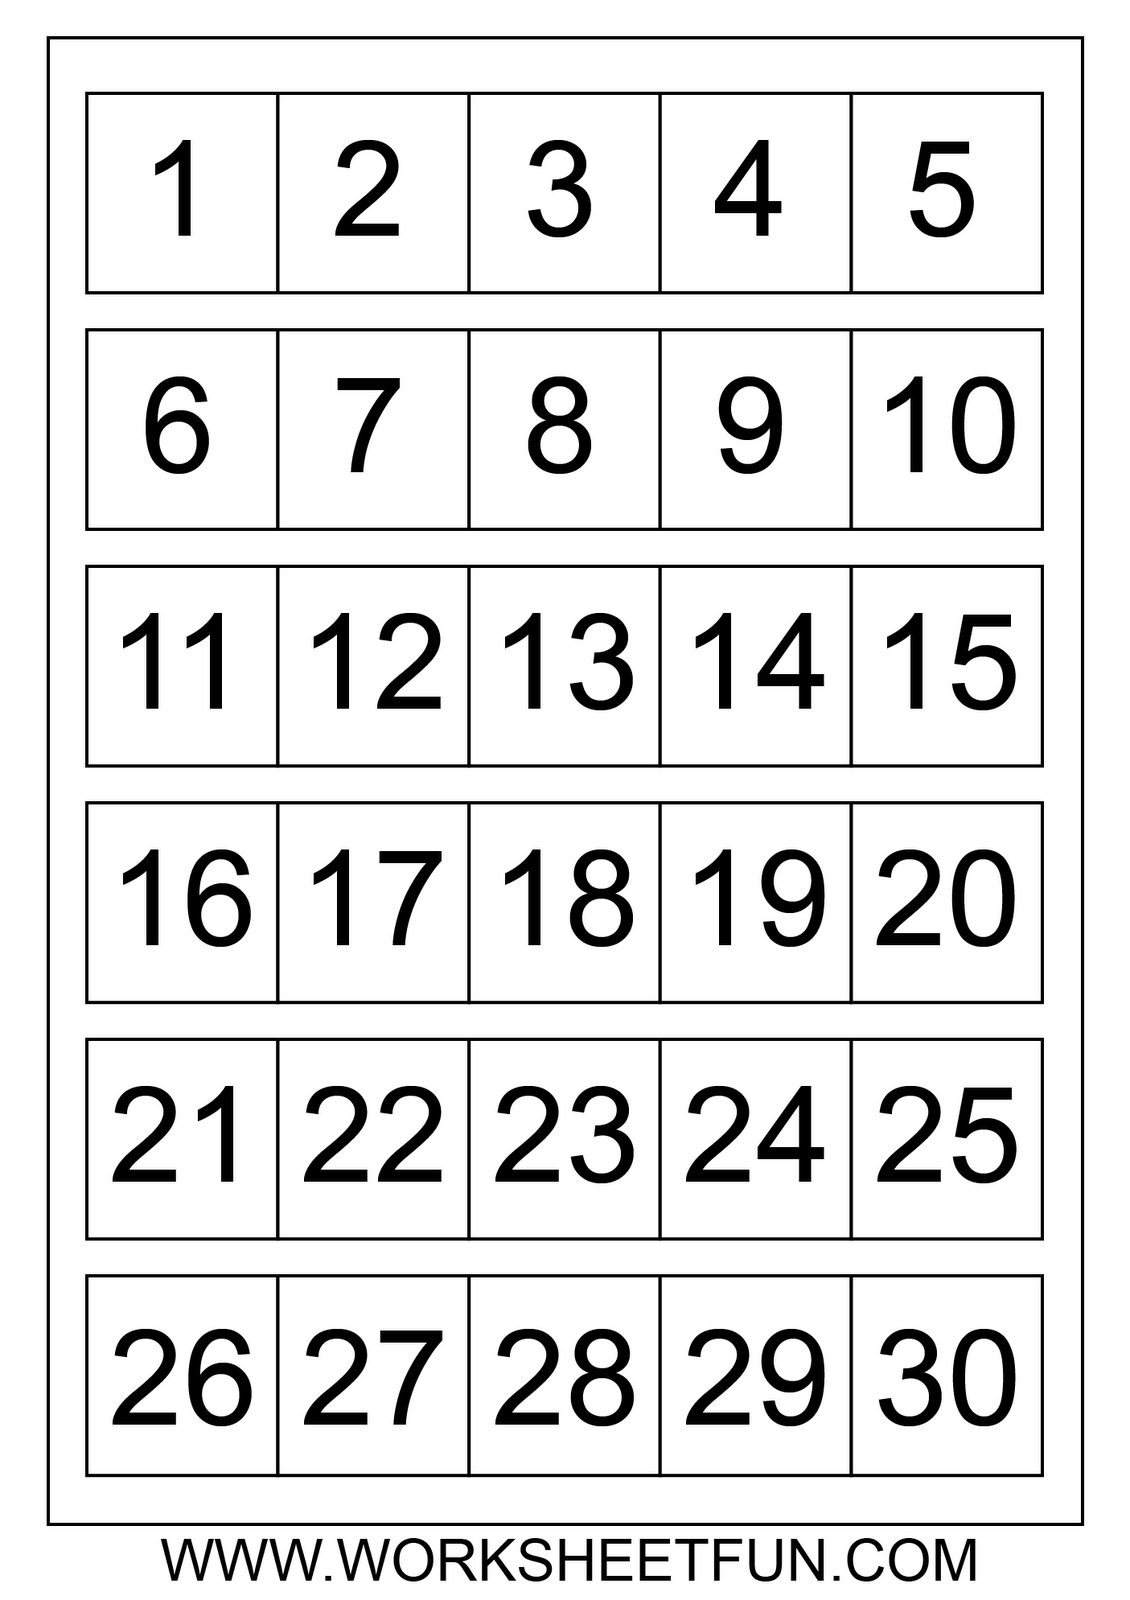 Large Printable Numbers 1 100 | To Dot With Numbers Printable - Free Large Printable Numbers 1 100